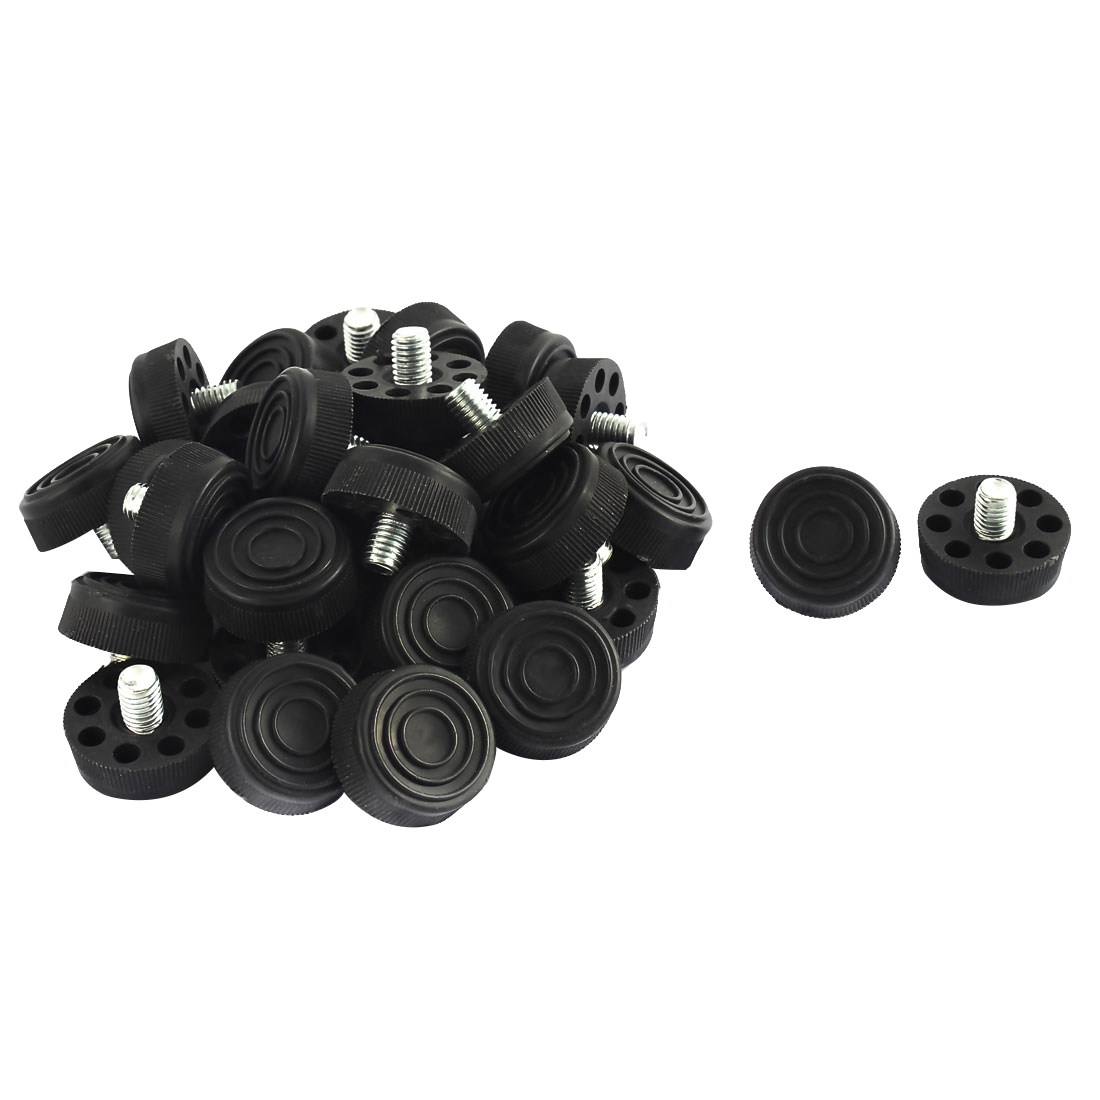 Furniture Table Chair 8 Holes Base Adjustable Leveling Foot Black M8 x 10mm Male Thread 30pcs